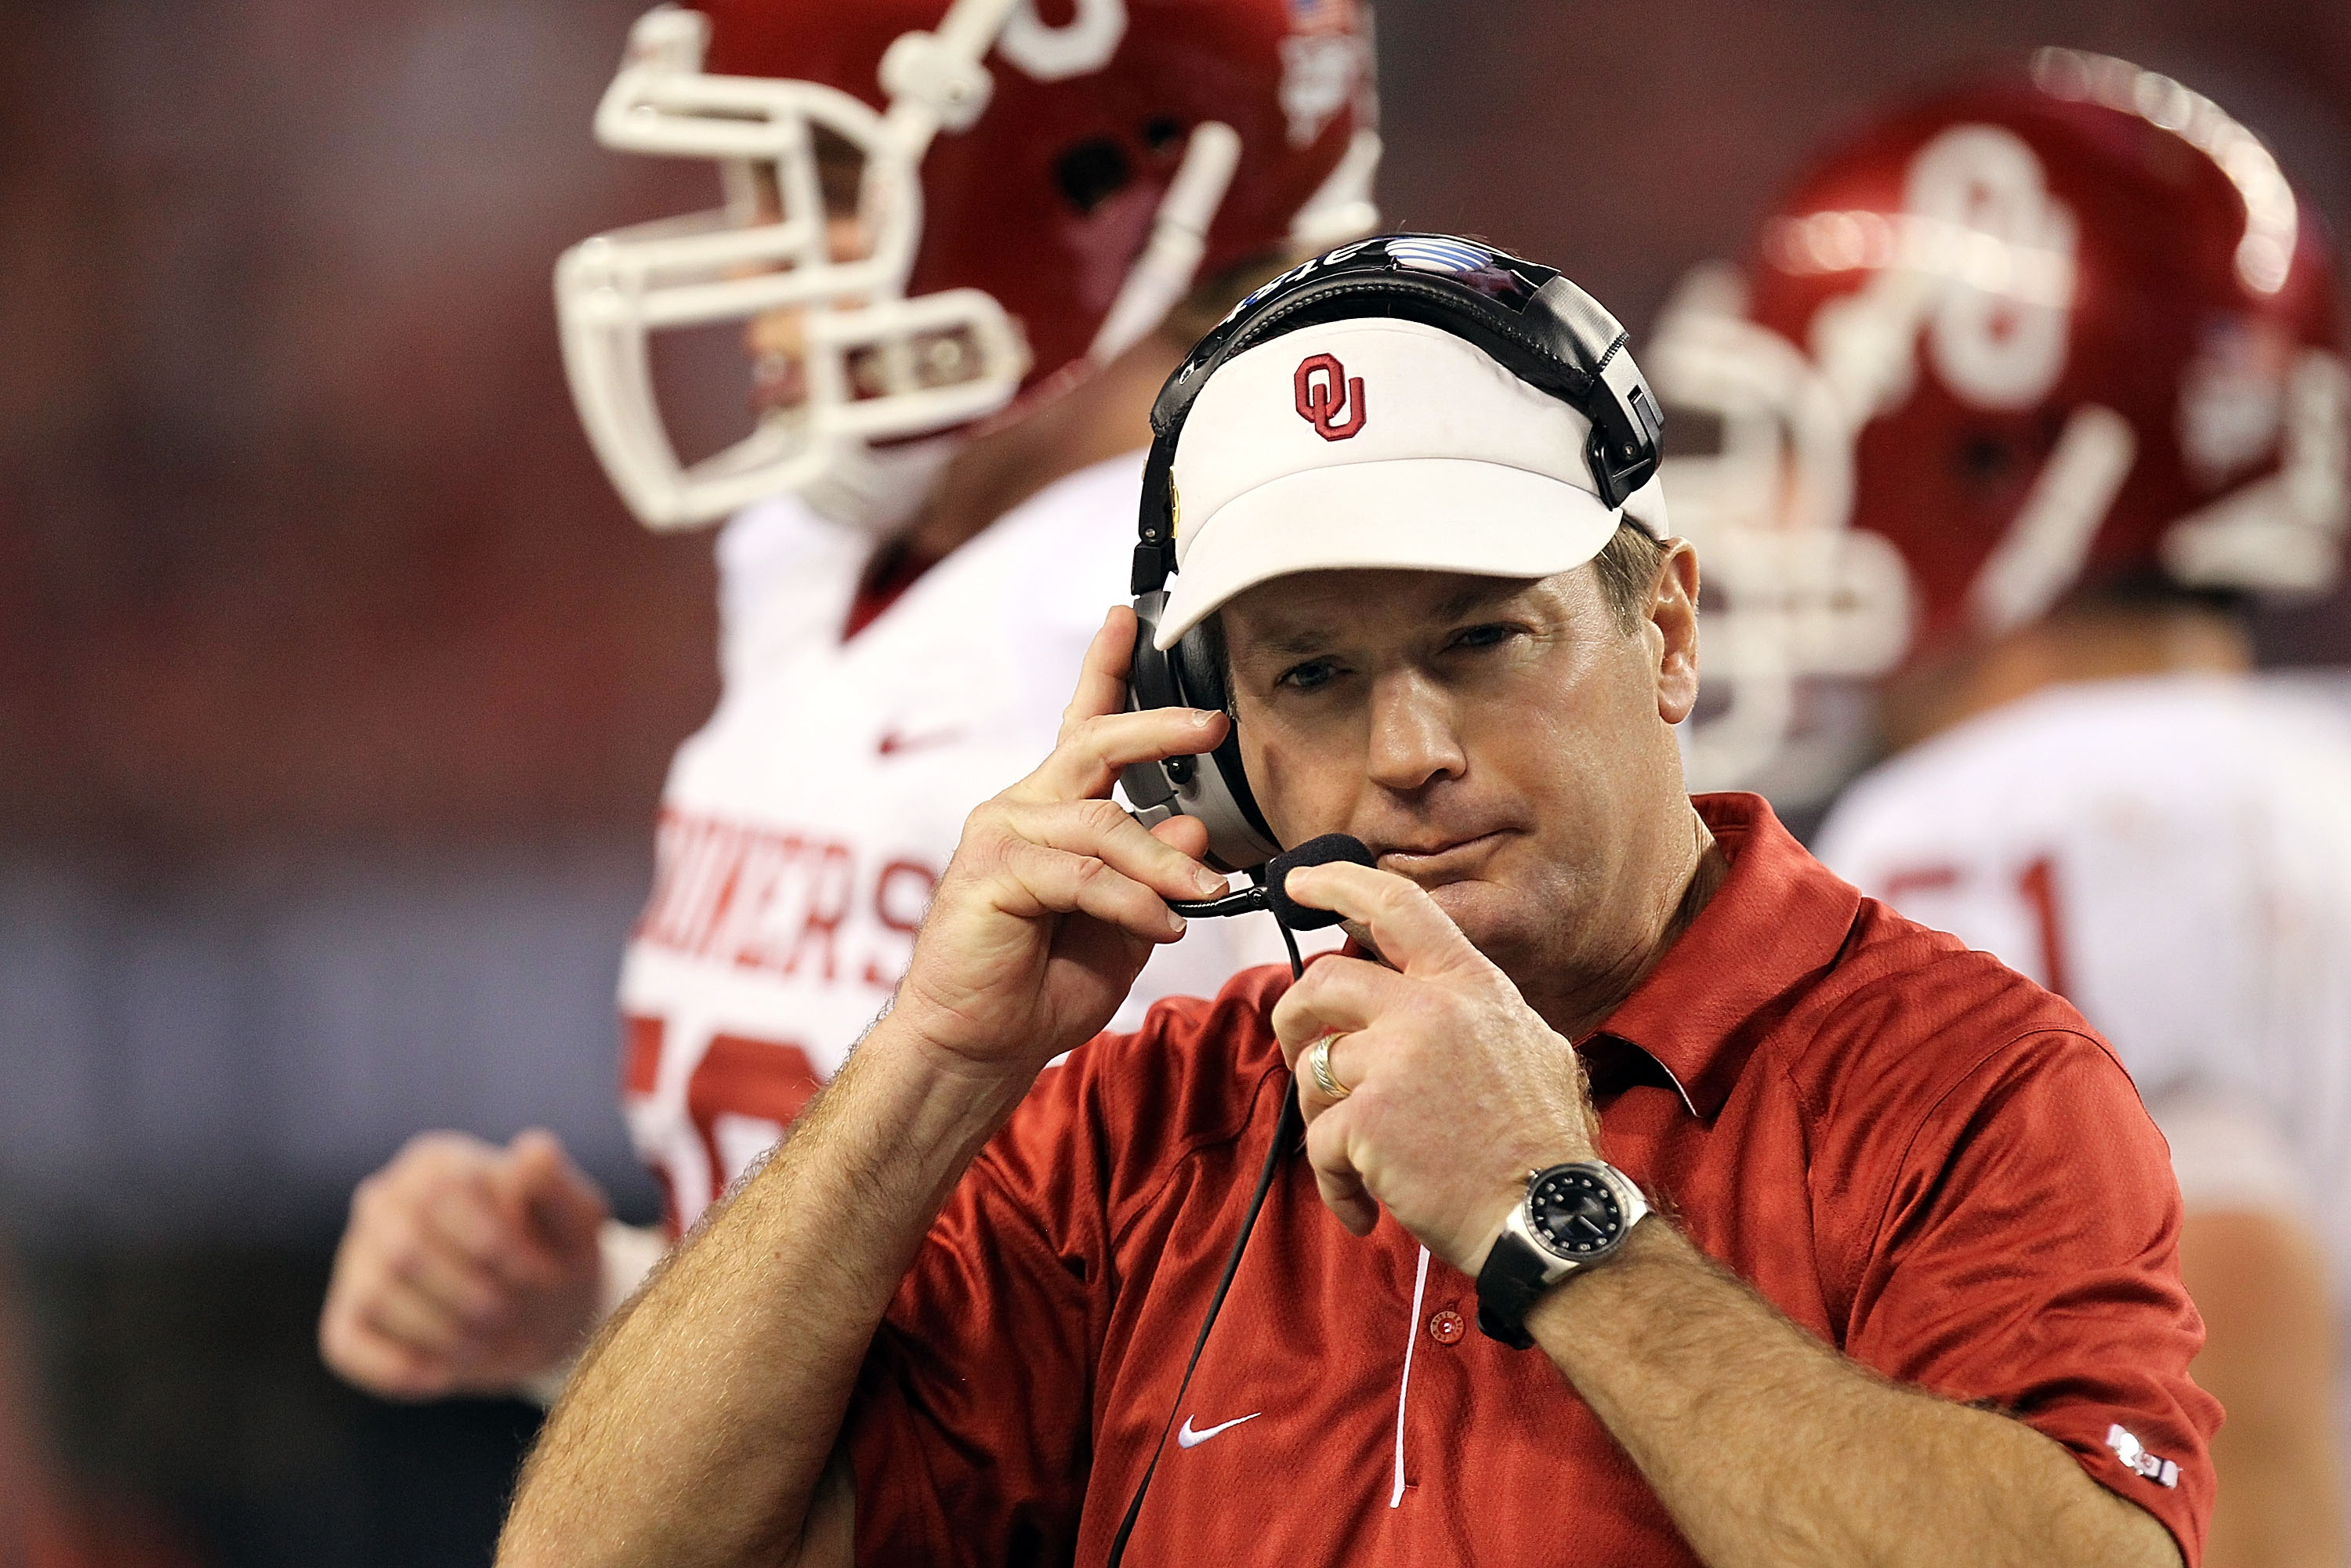 ARLINGTON, TX - DECEMBER 04:  Head coach Bob Stoops during the Big 12 Championship at Cowboys Stadium on December 4, 2010 in Arlington, Texas.  (Photo by Ronald Martinez/Getty Images)